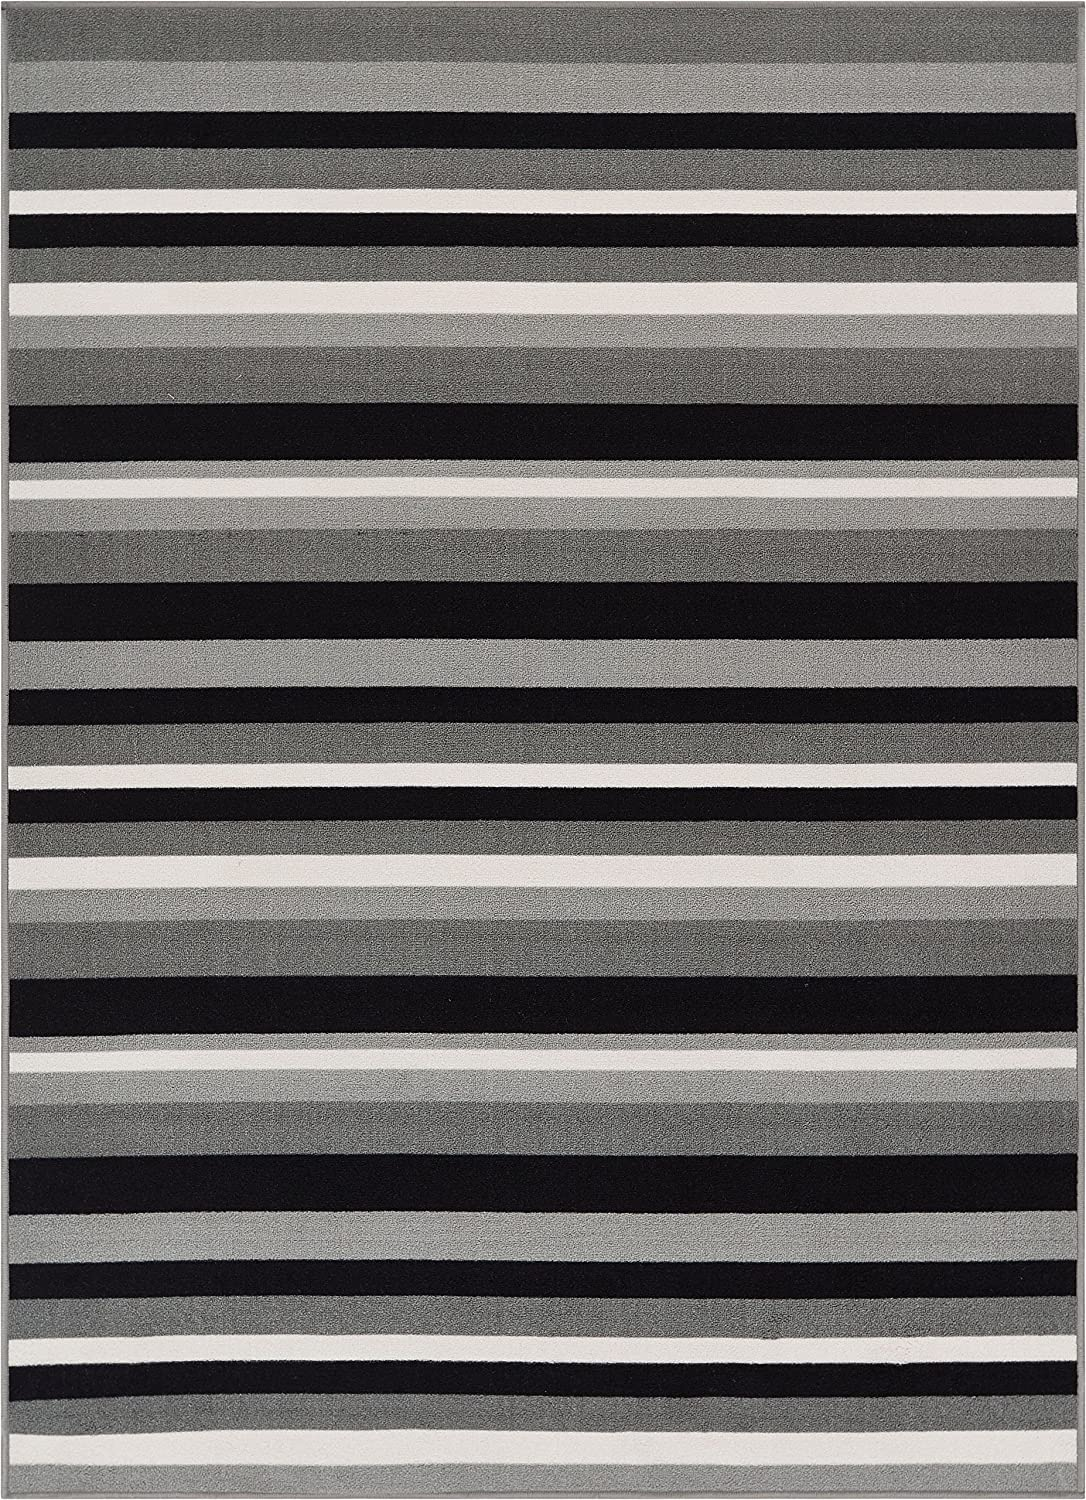 Well Ranking TOP3 OFFicial shop Woven Kings Court Uni Stripes Lines Grey Modern 5 Gemoetric